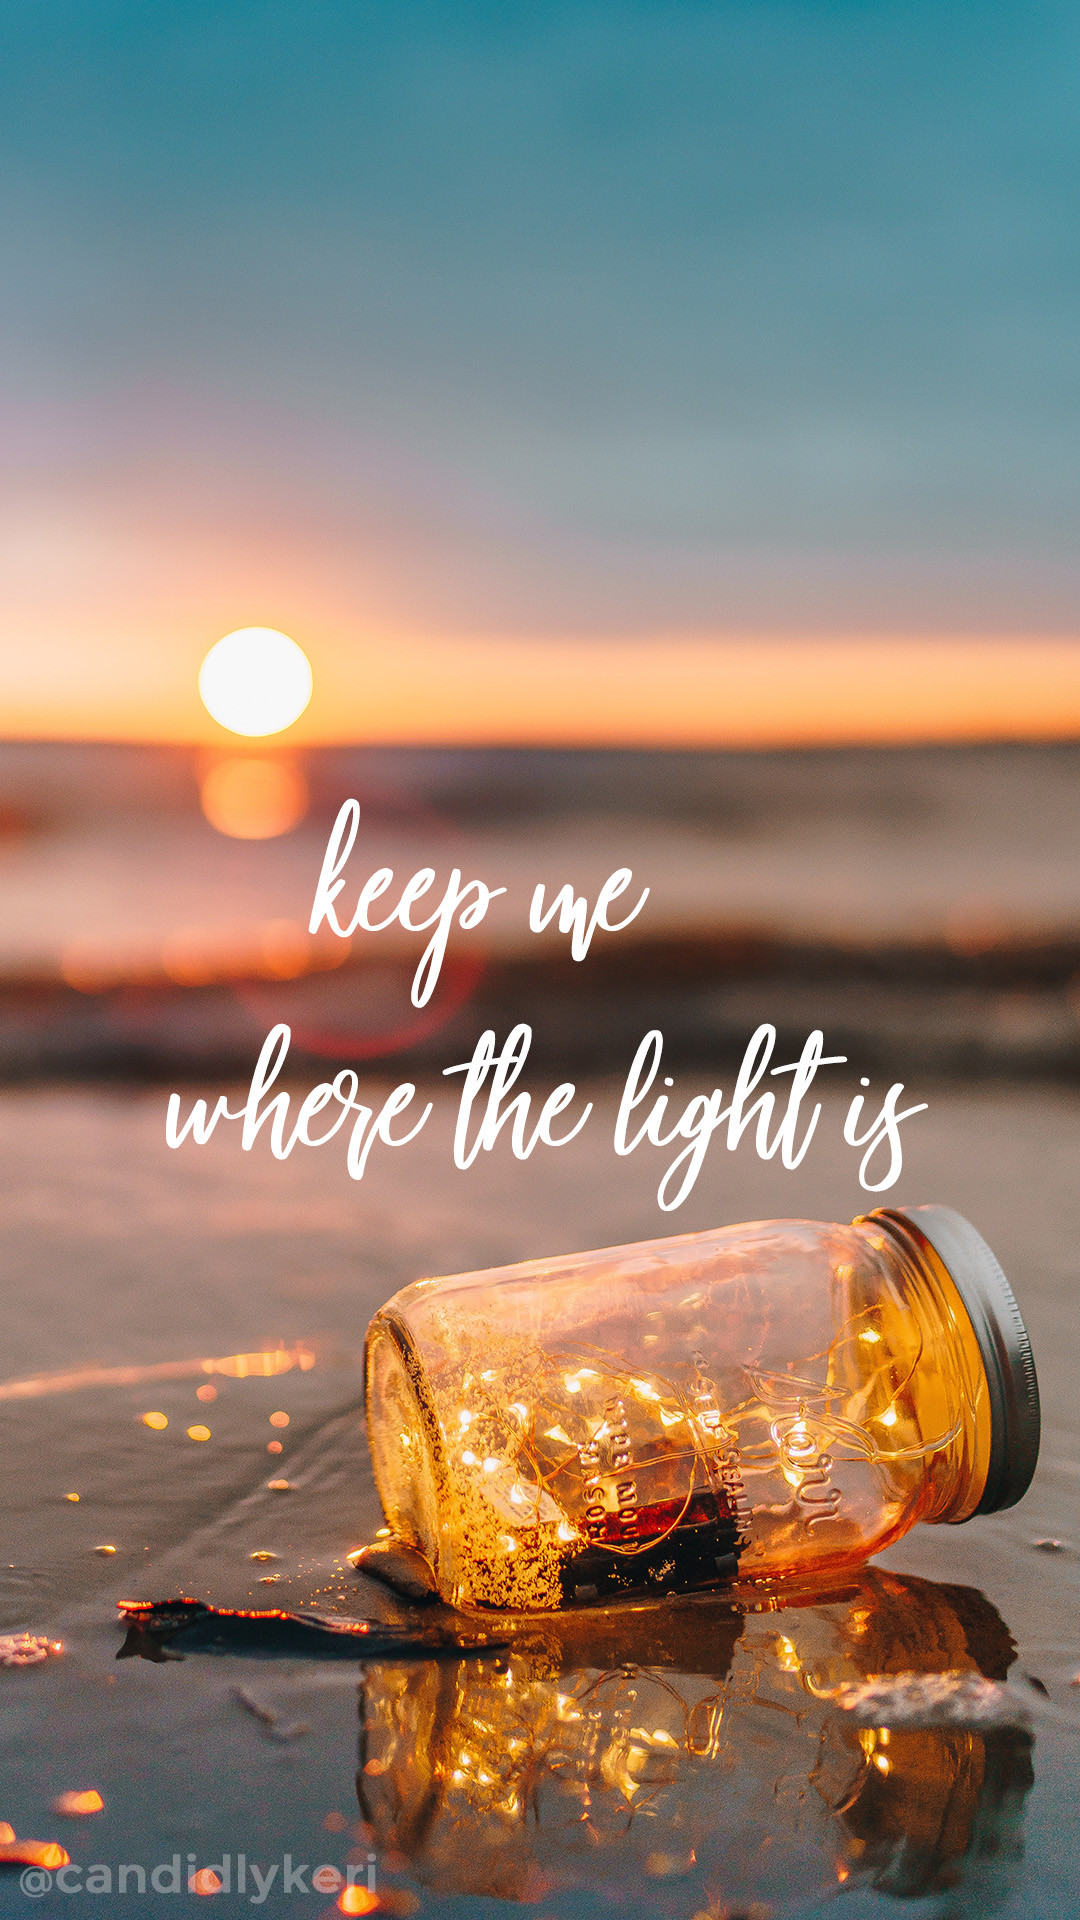 Keep me where the light is quote sunset mason jar wallpaper you can  download for free